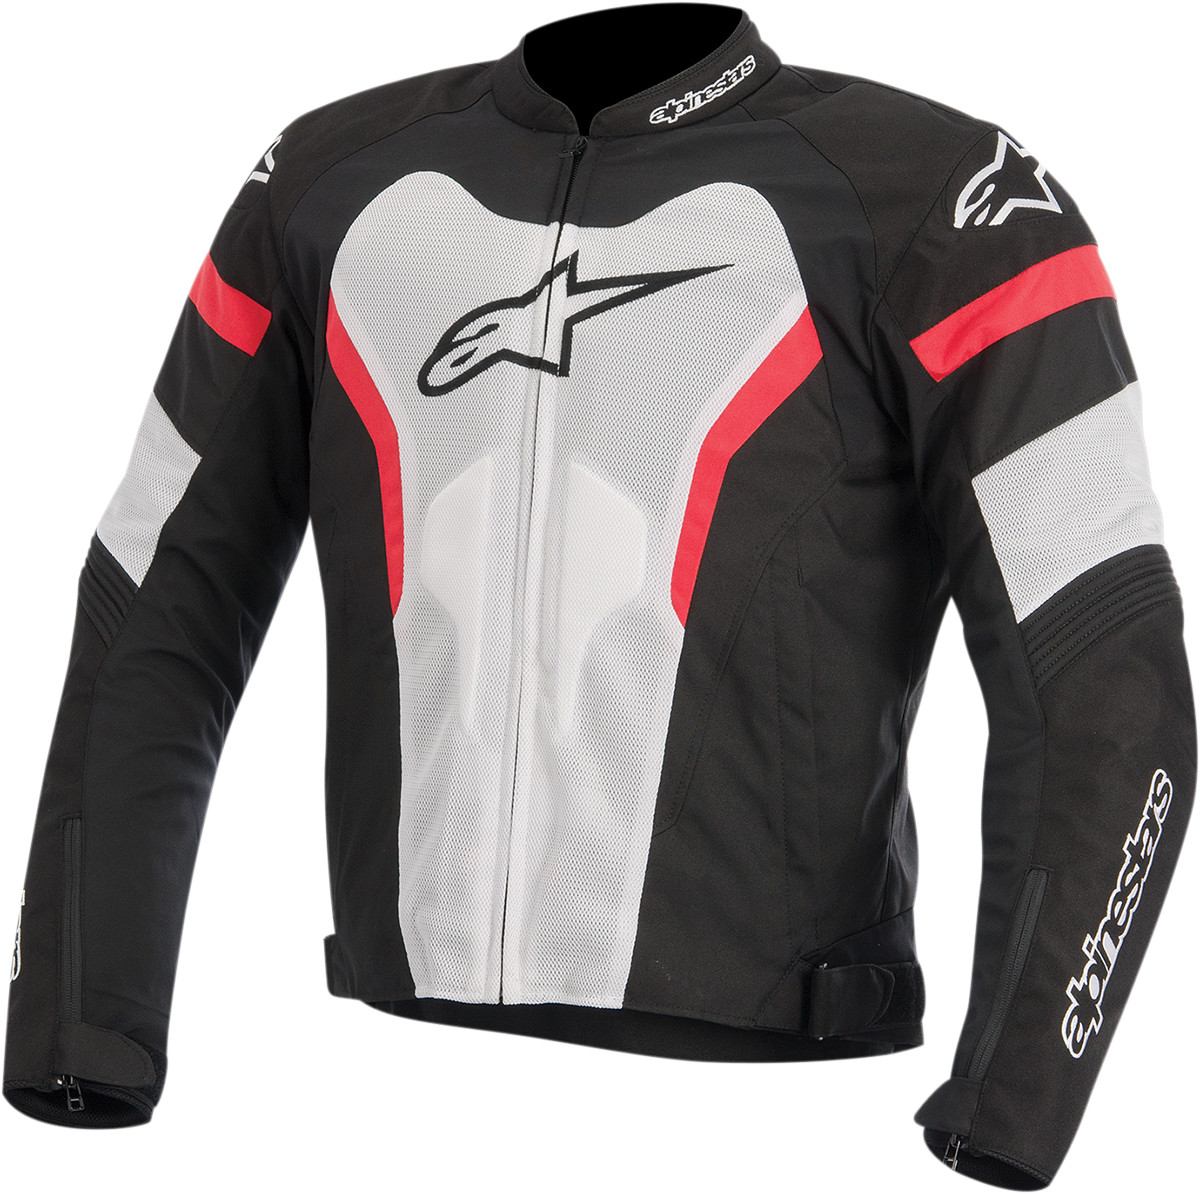 alpinestars t gp pro air textile motorcycle riding jacket mens all sizes color ebay. Black Bedroom Furniture Sets. Home Design Ideas